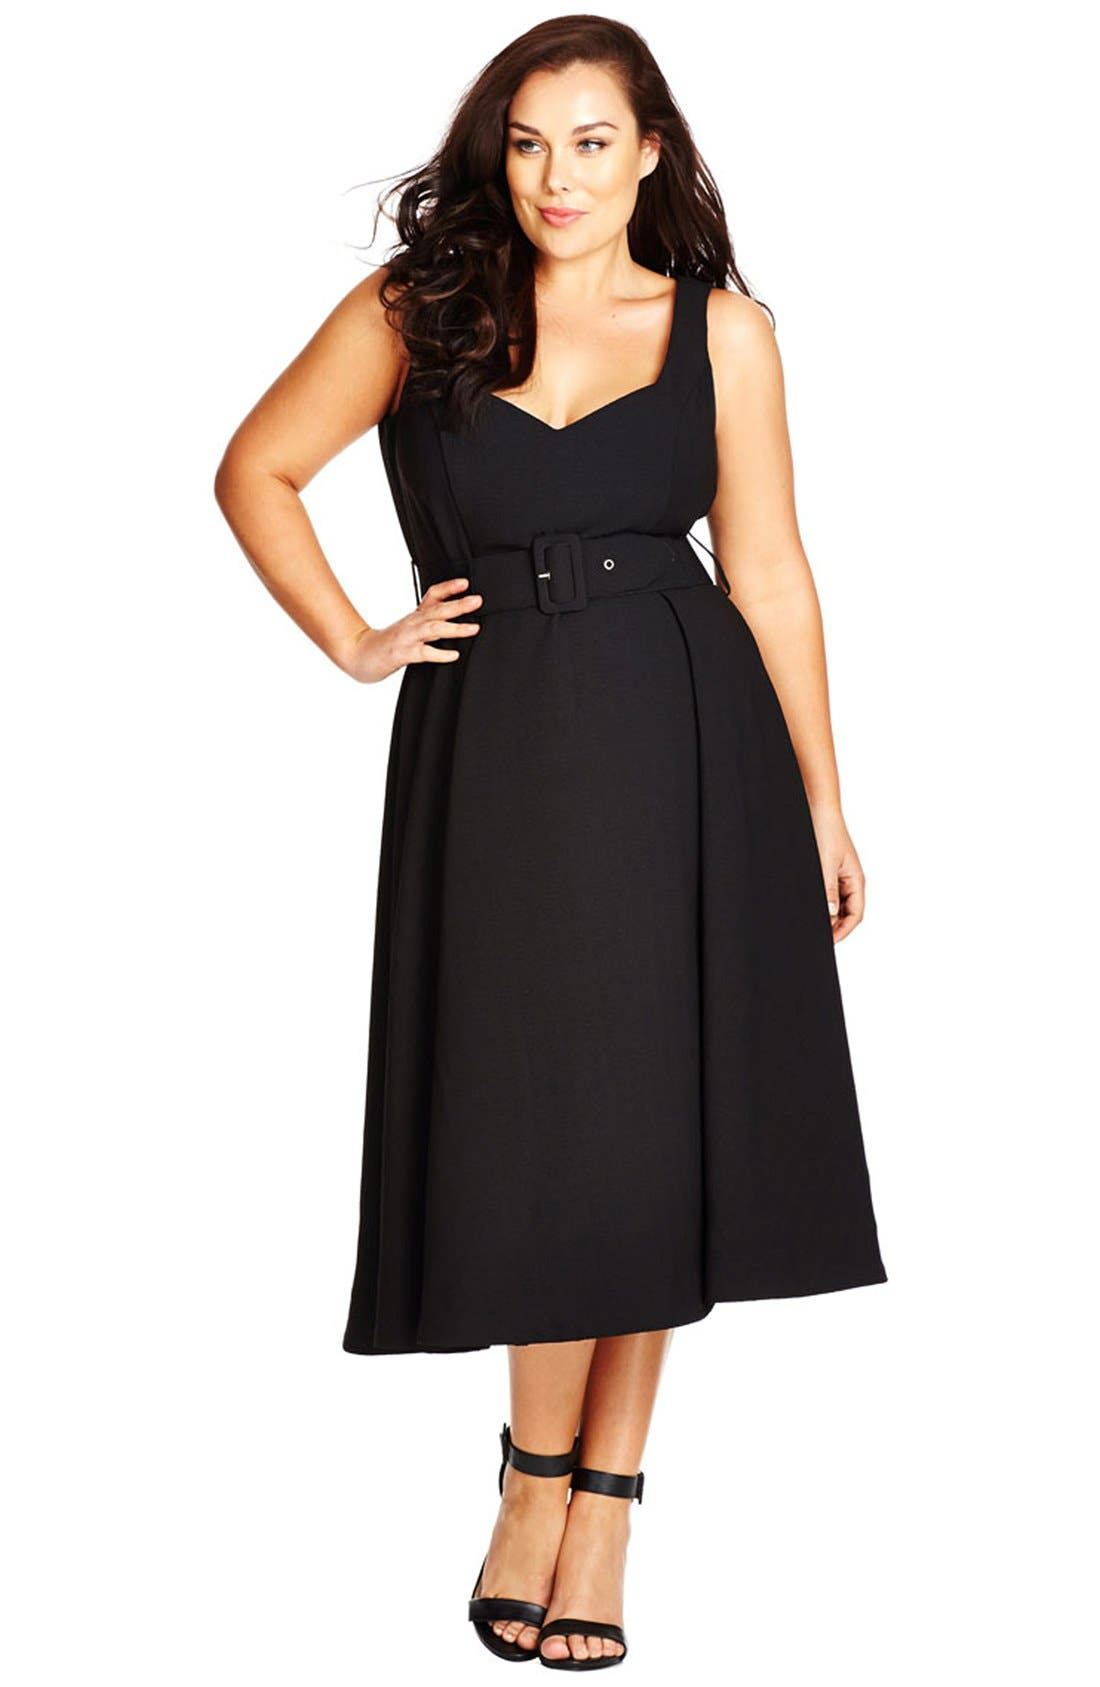 Alternate Image 1 Selected - City Chic Belted Sweetheart Neck Tea Length Dress (Plus Size)